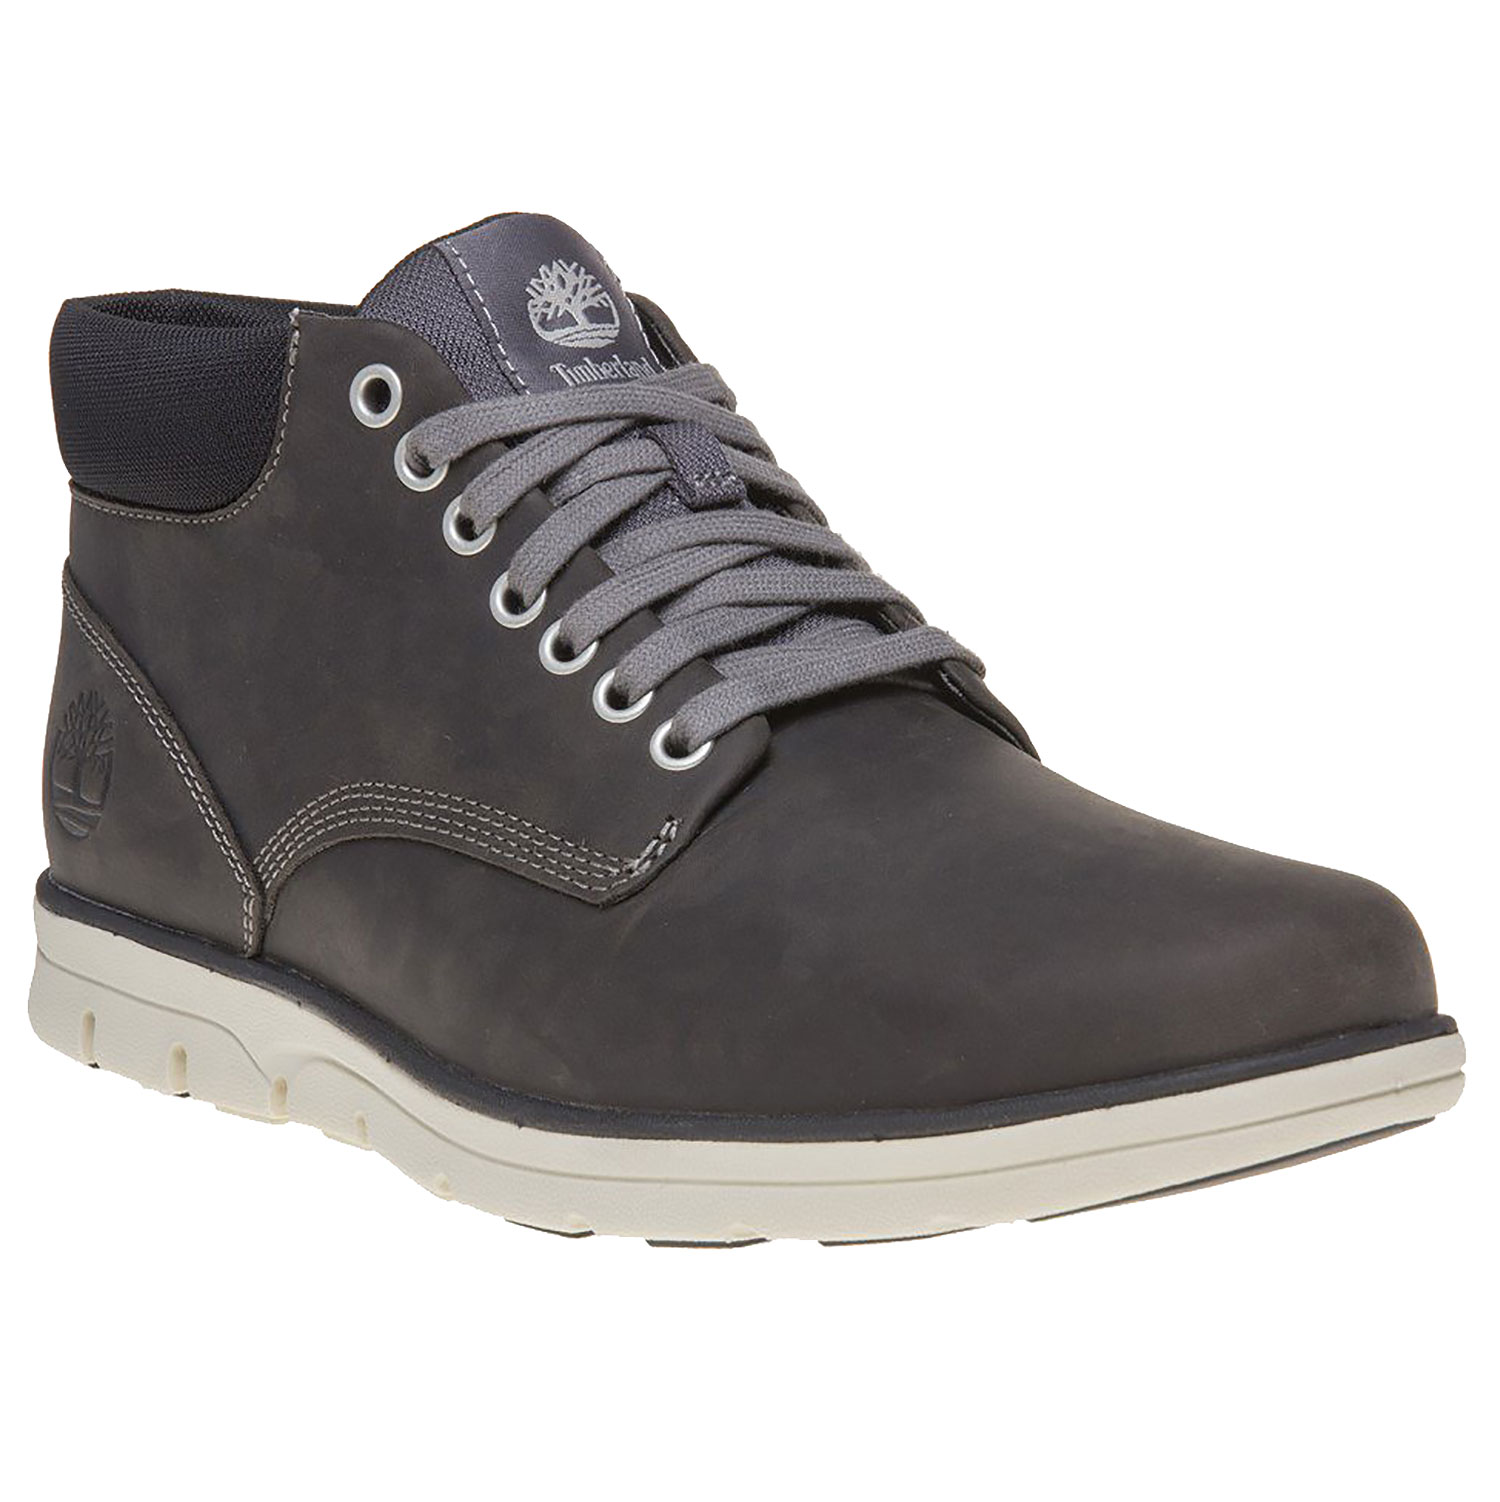 Timberland available from Blackleaf